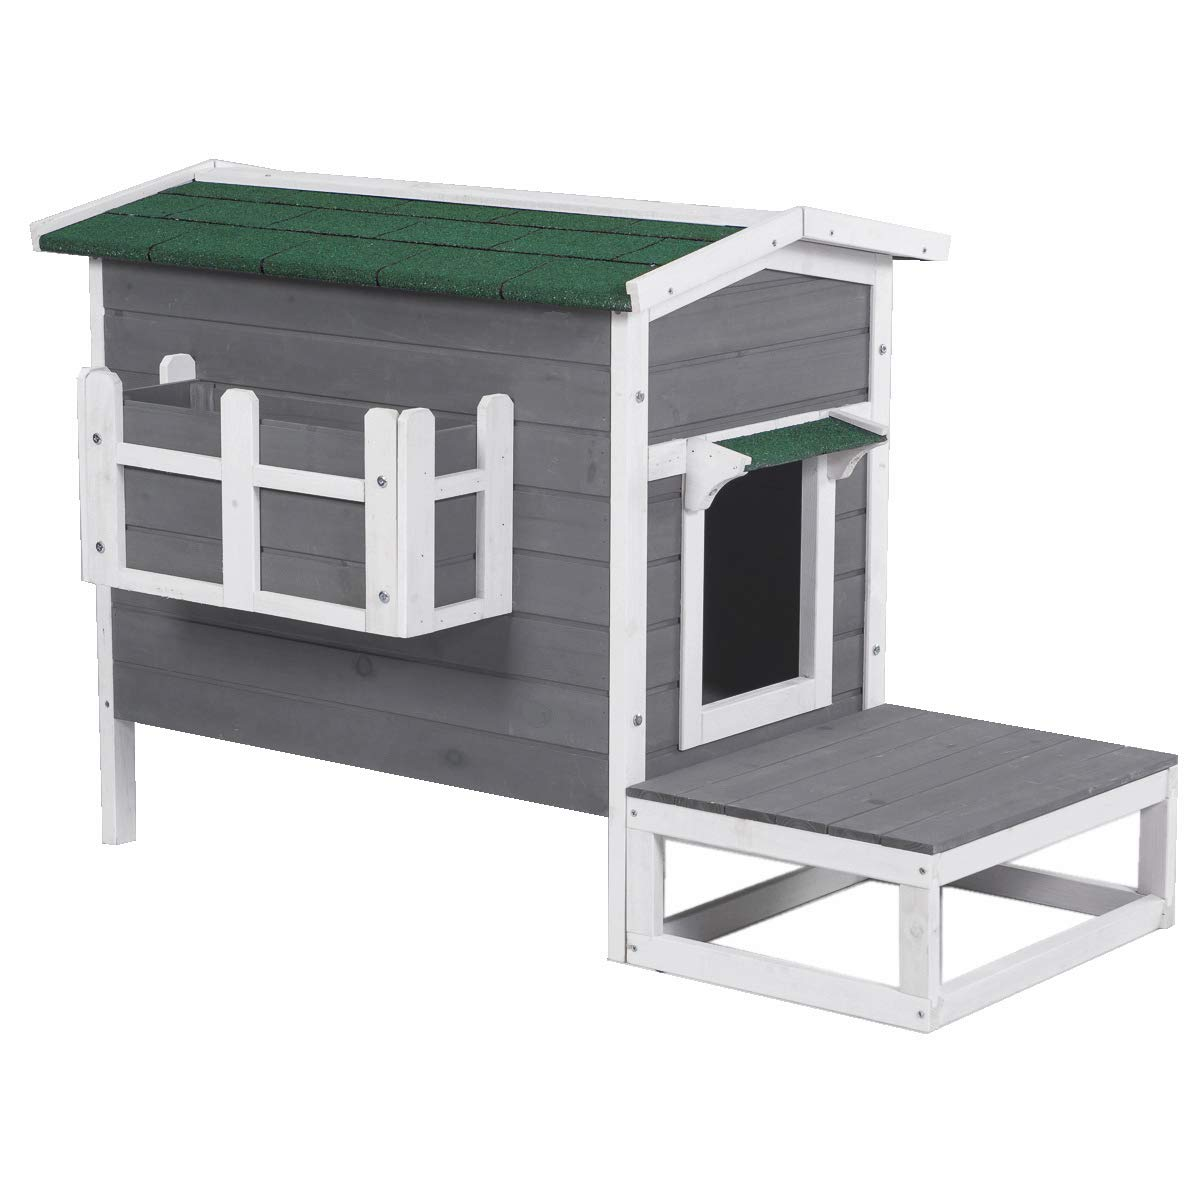 Good Life Weatherproof Outdoor Wood Cat House Pet Home Furniture Cat Shelter Small Dog Condo Gray & White Color with Stairs for Cat and Small Dog PET500